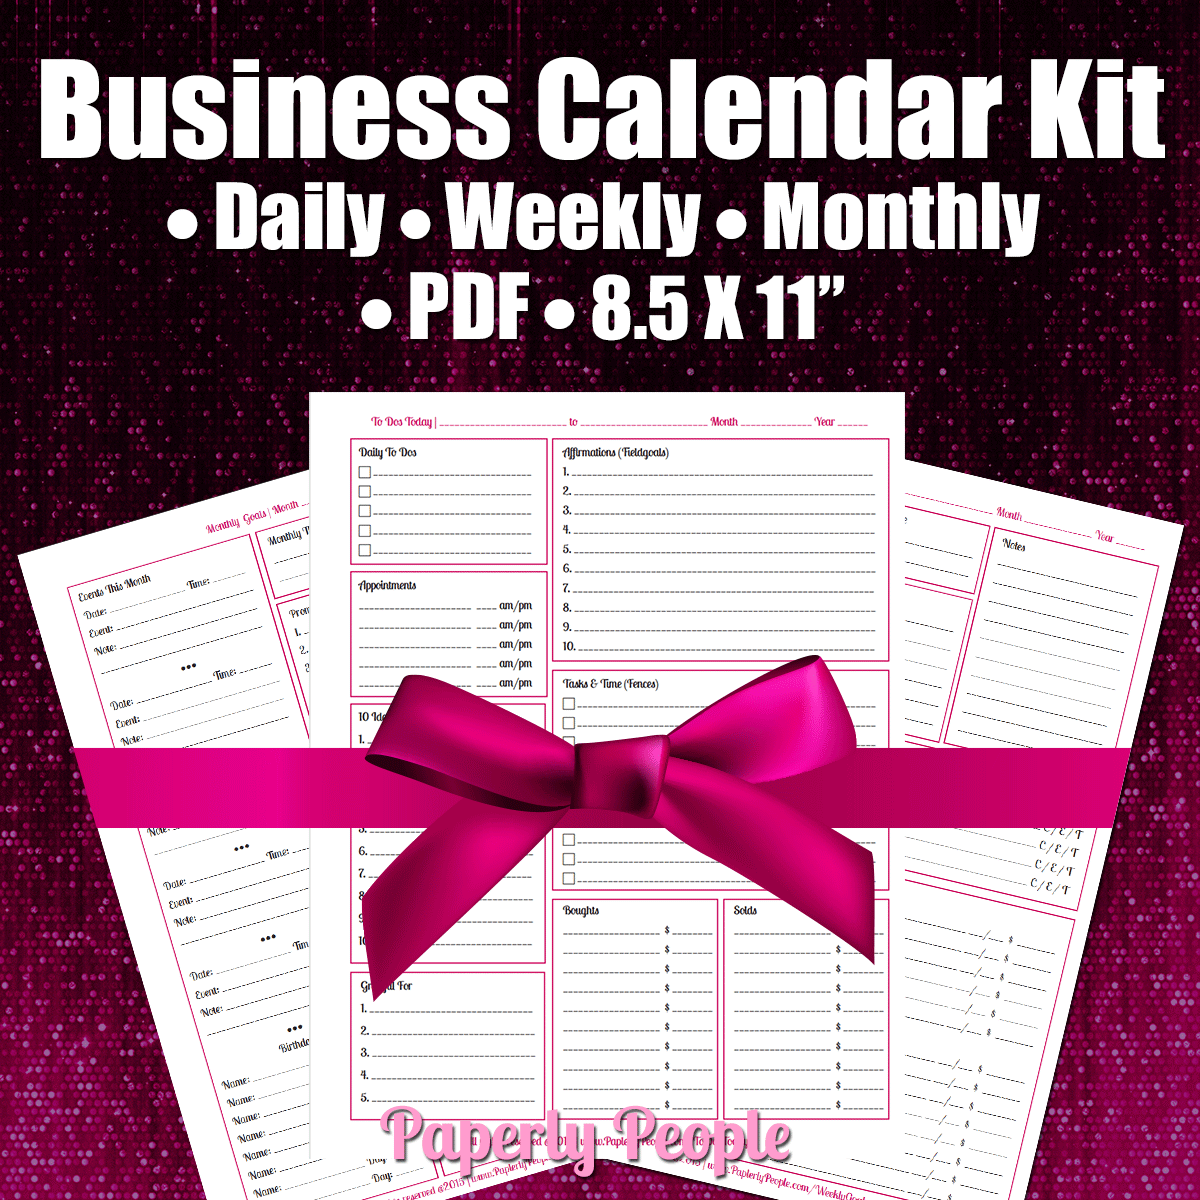 Business Calendar Kit Get All 3 Printable Planner Pages